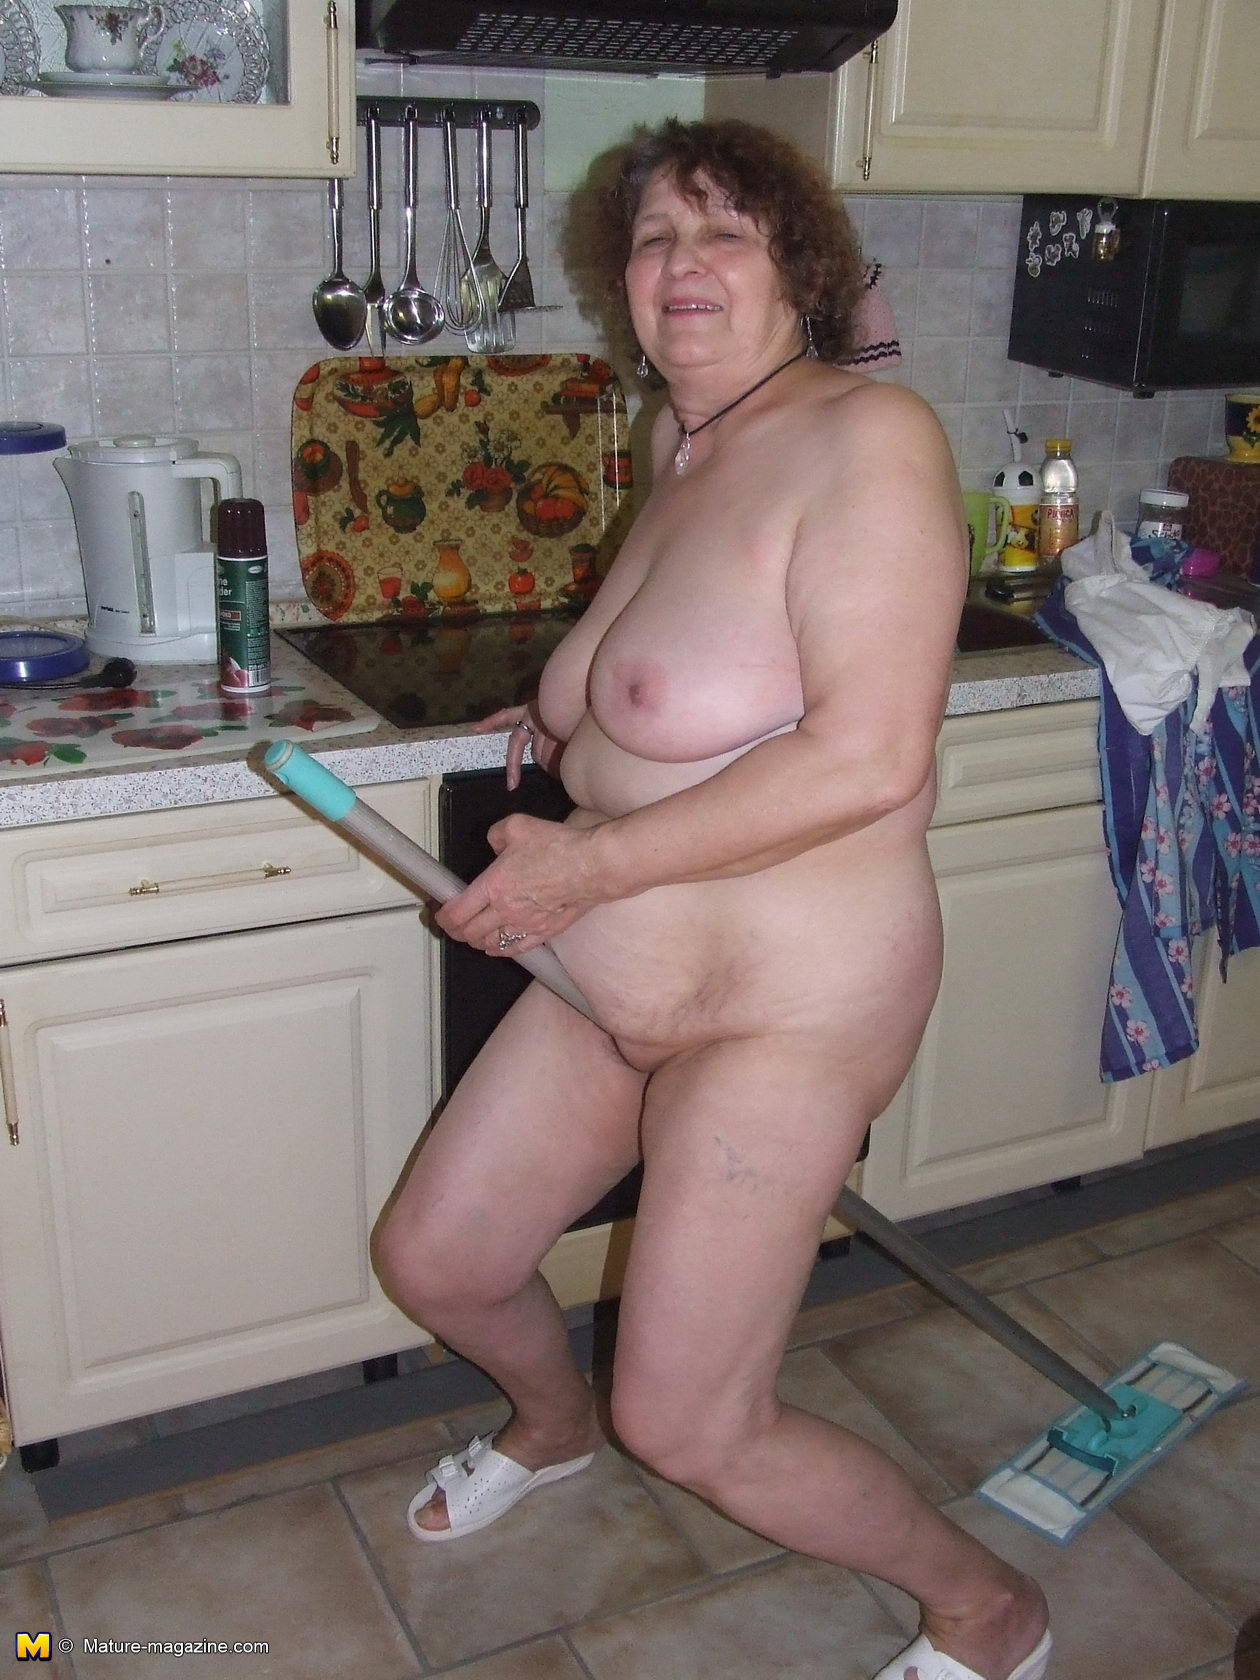 Mature naked in the kitchen suggest